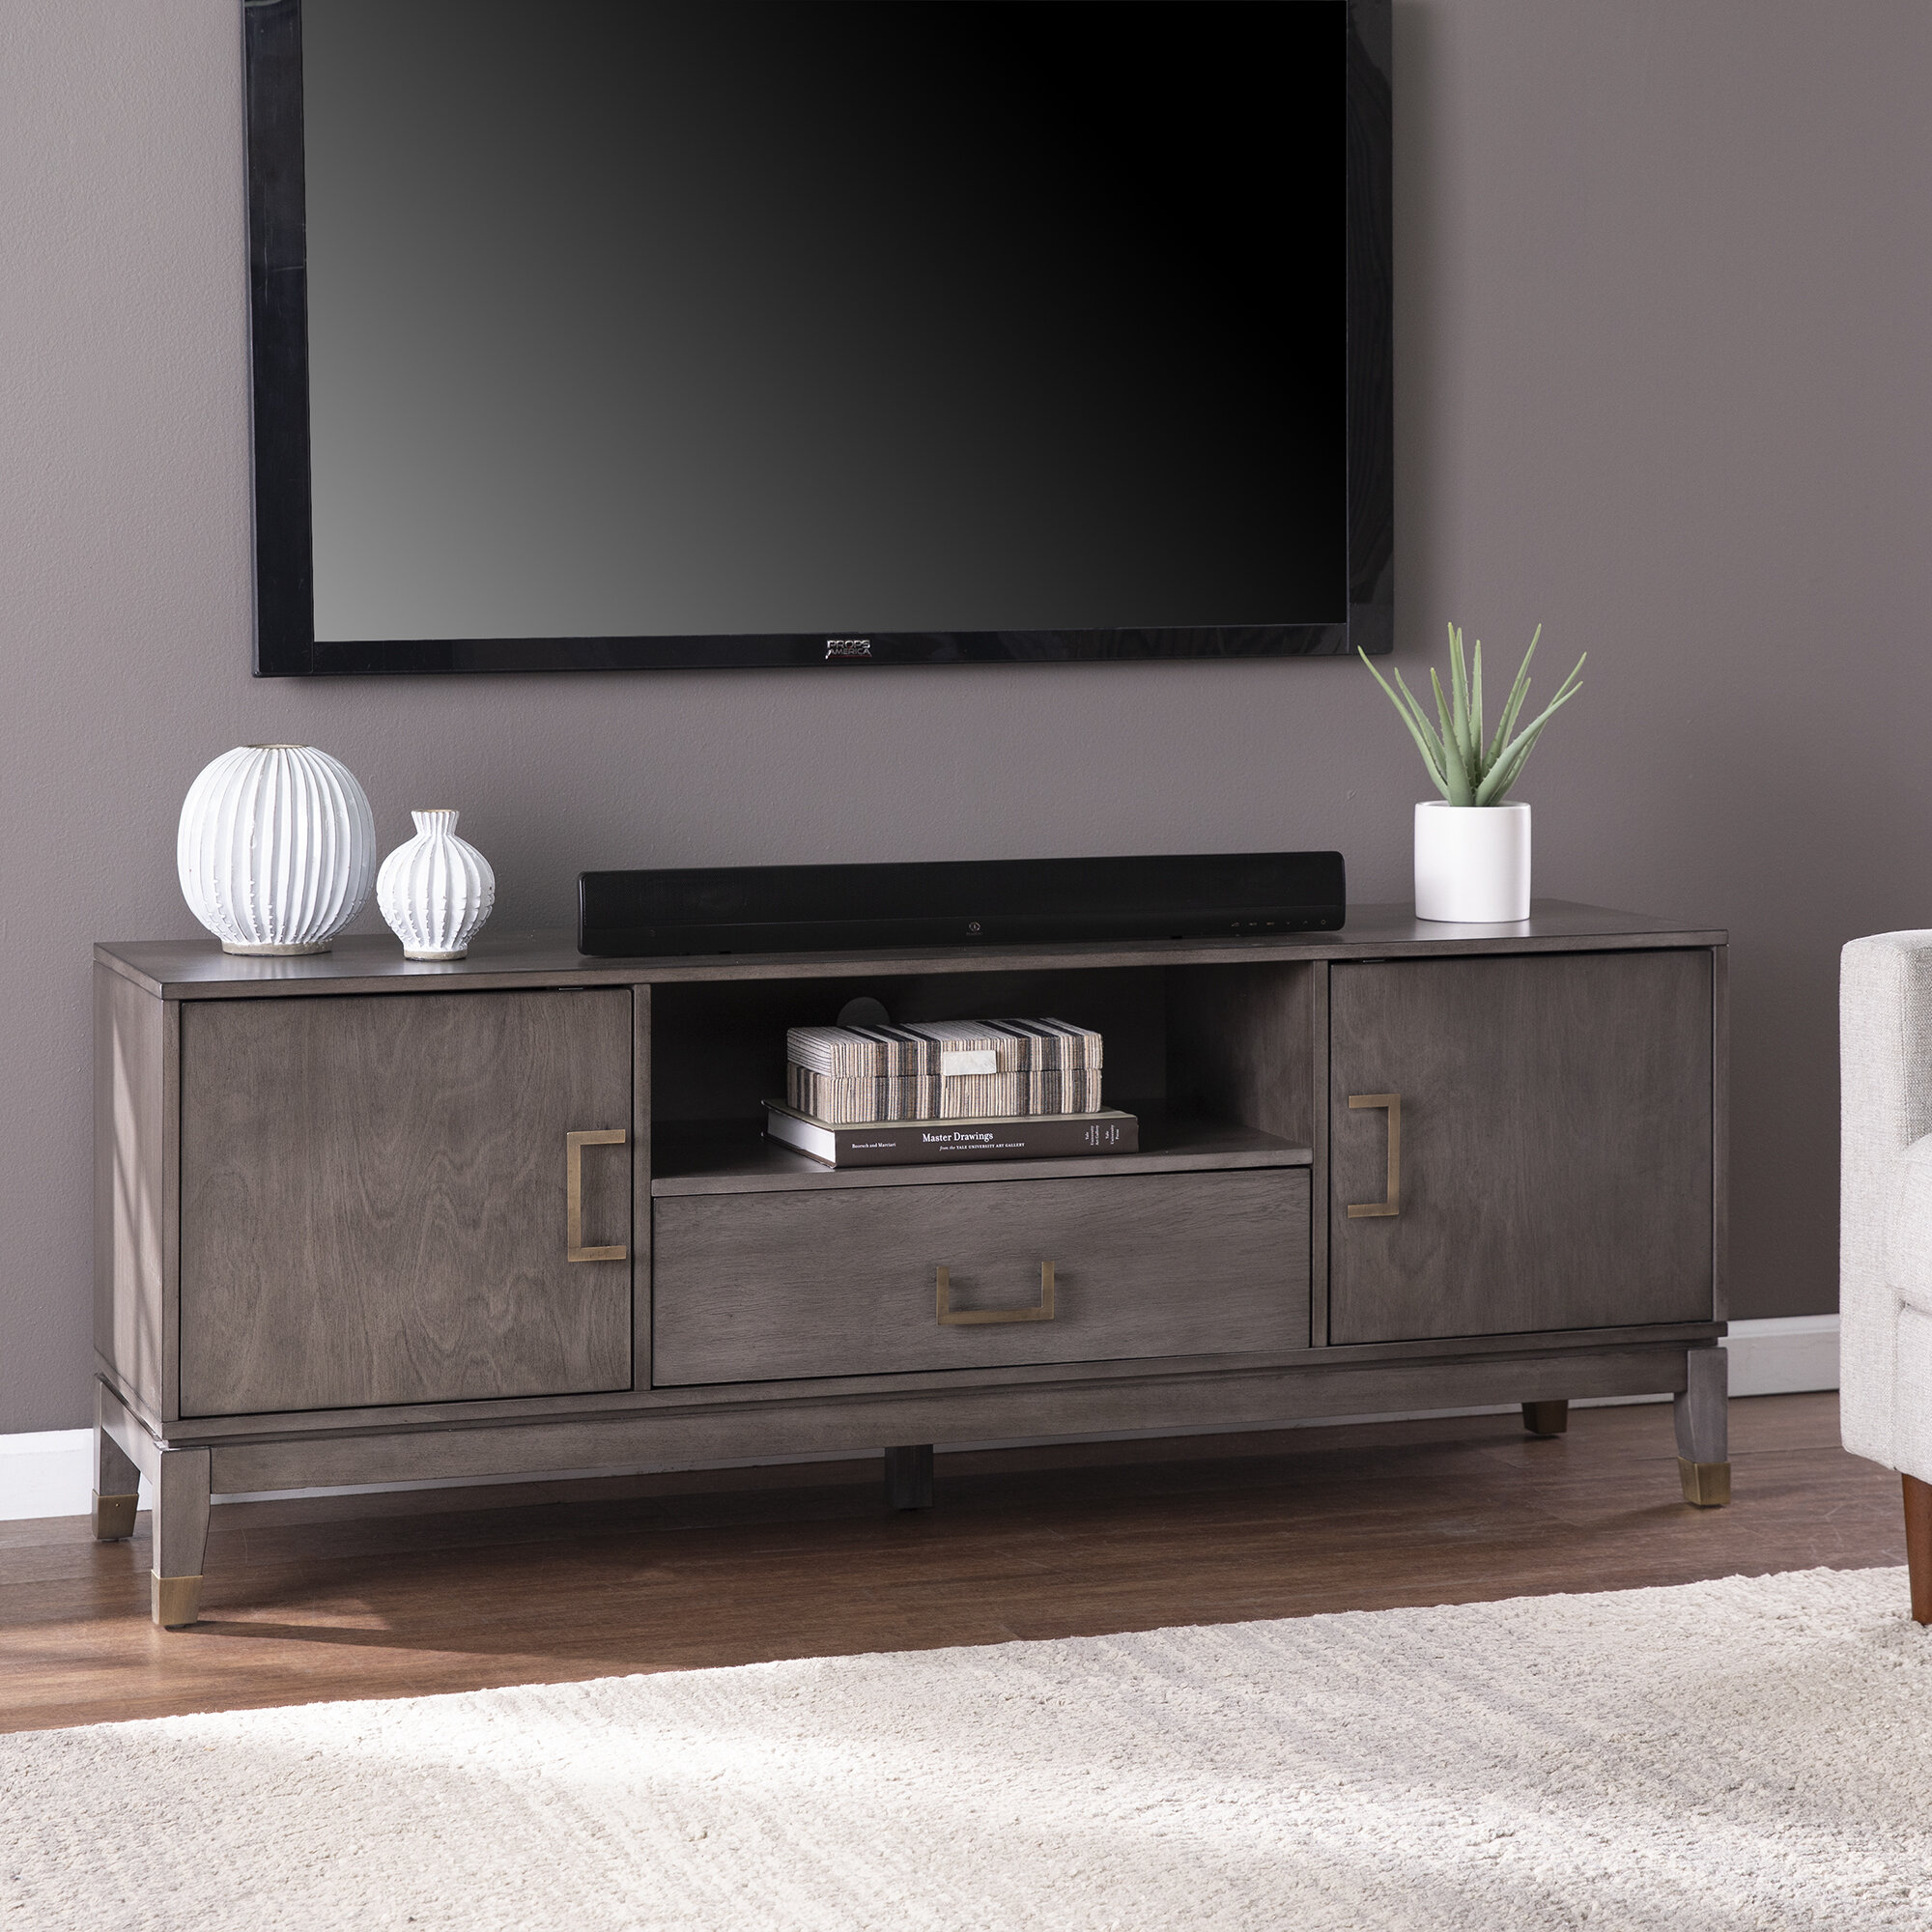 Everly Quinn Brenting Tv Stand For Tvs Up To 70 Reviews Wayfair